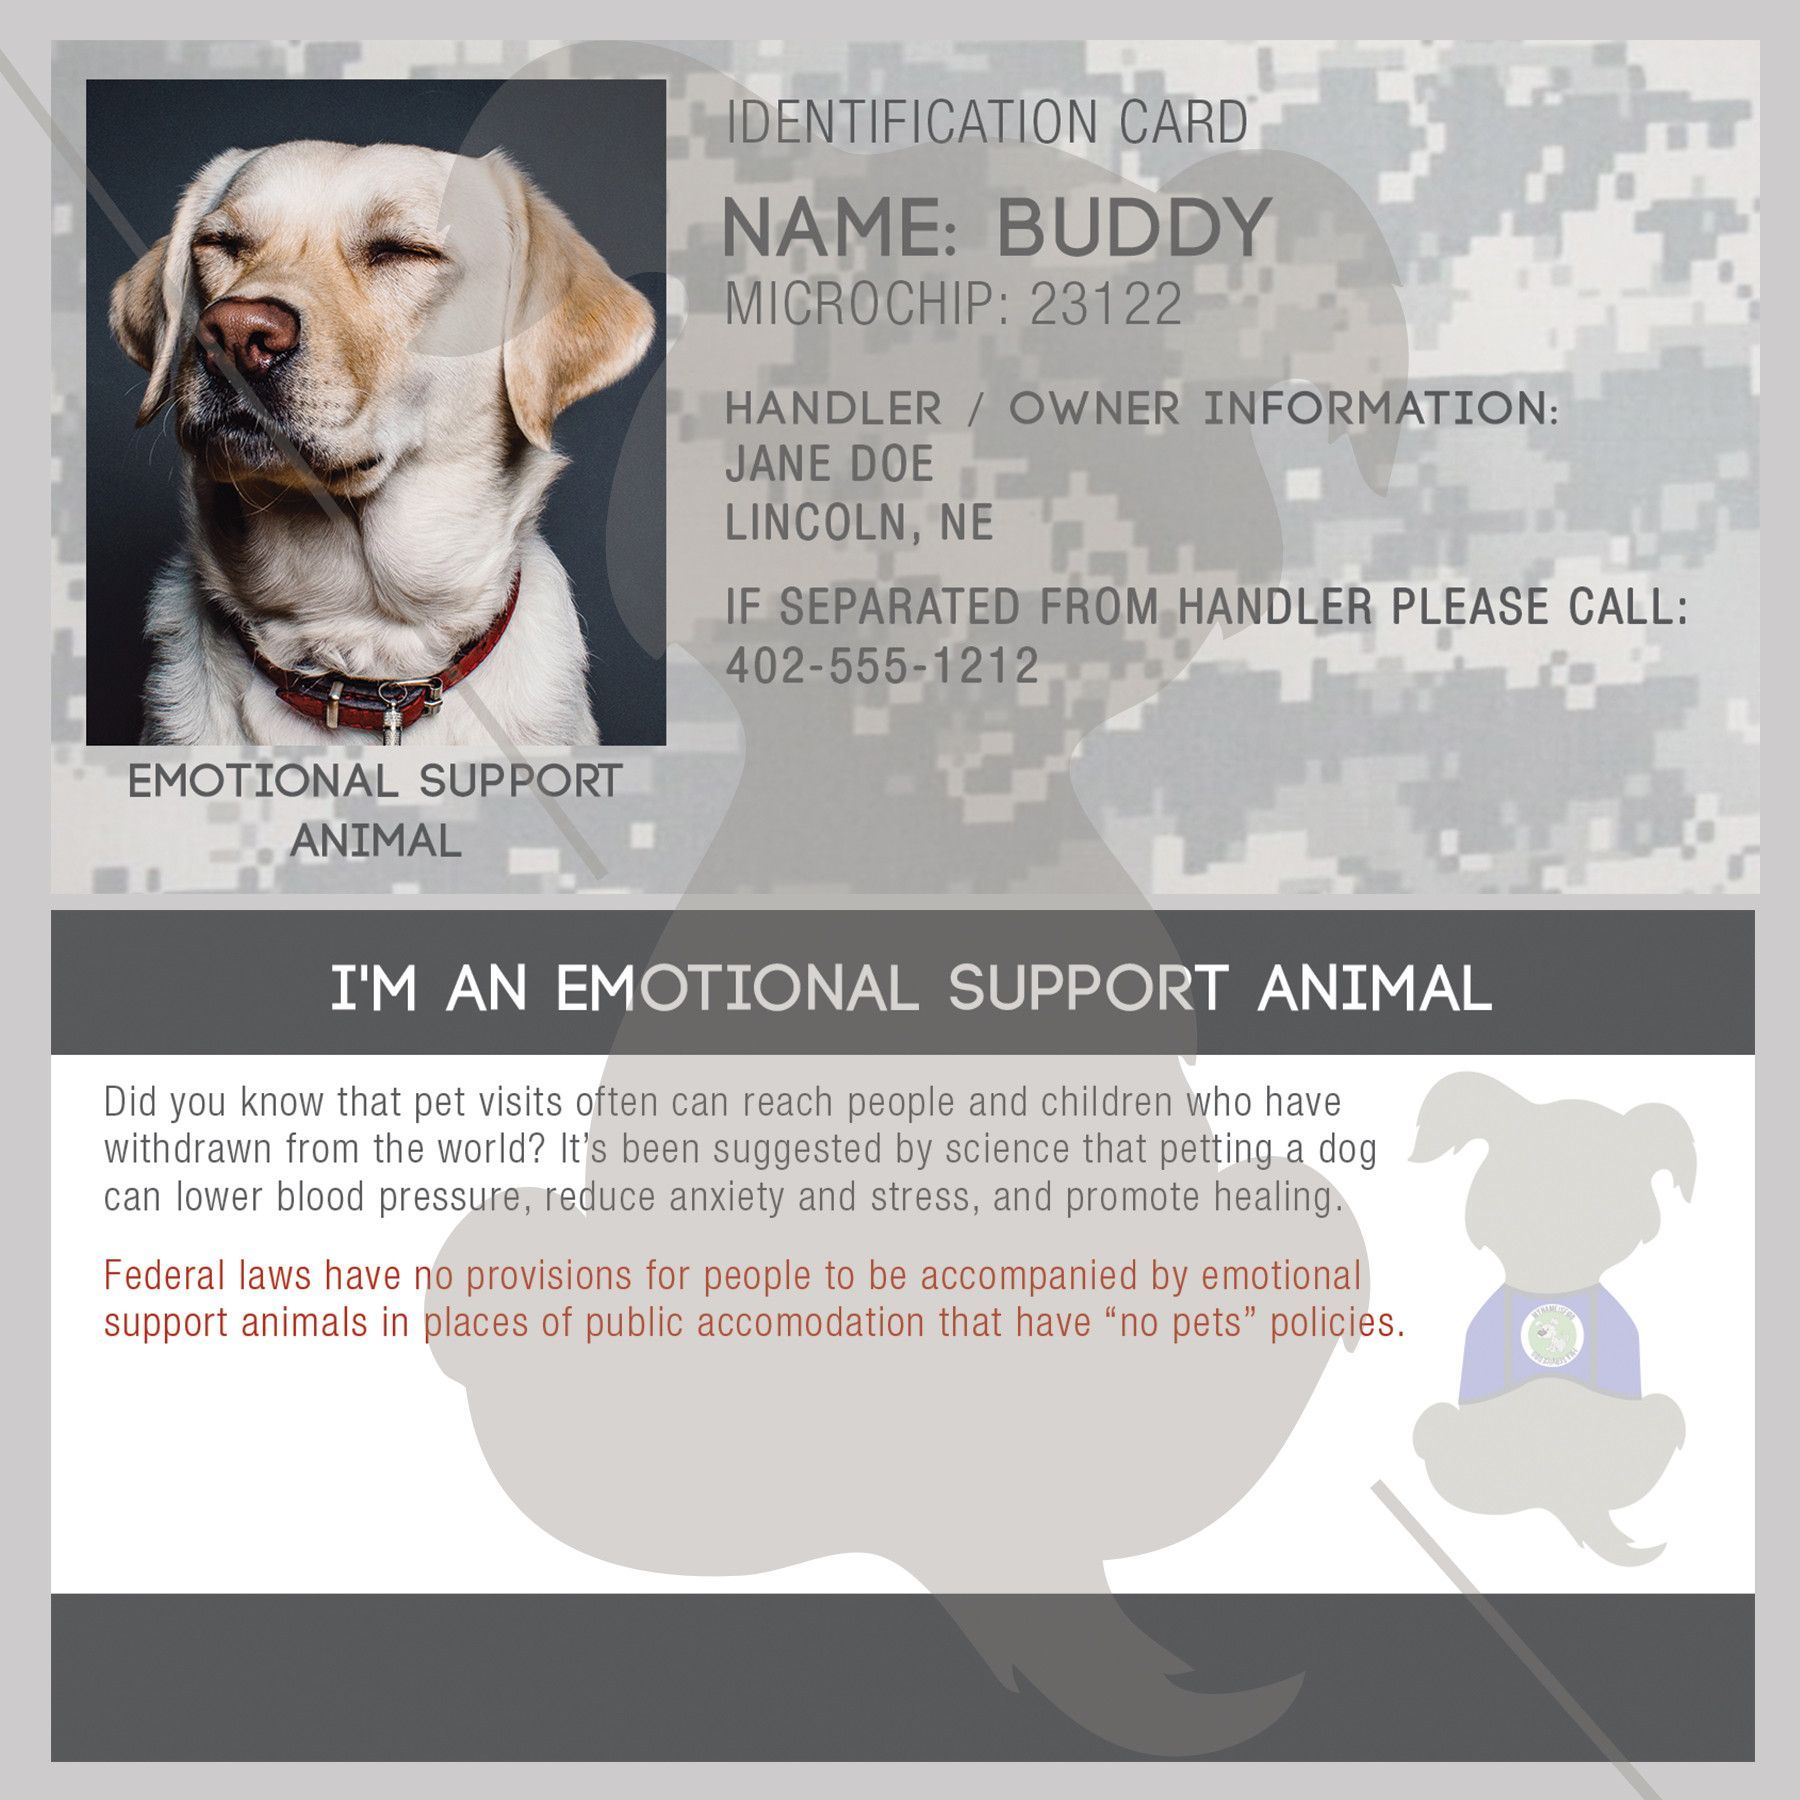 Id Card Emotional Support Animal Emotional Support Animal